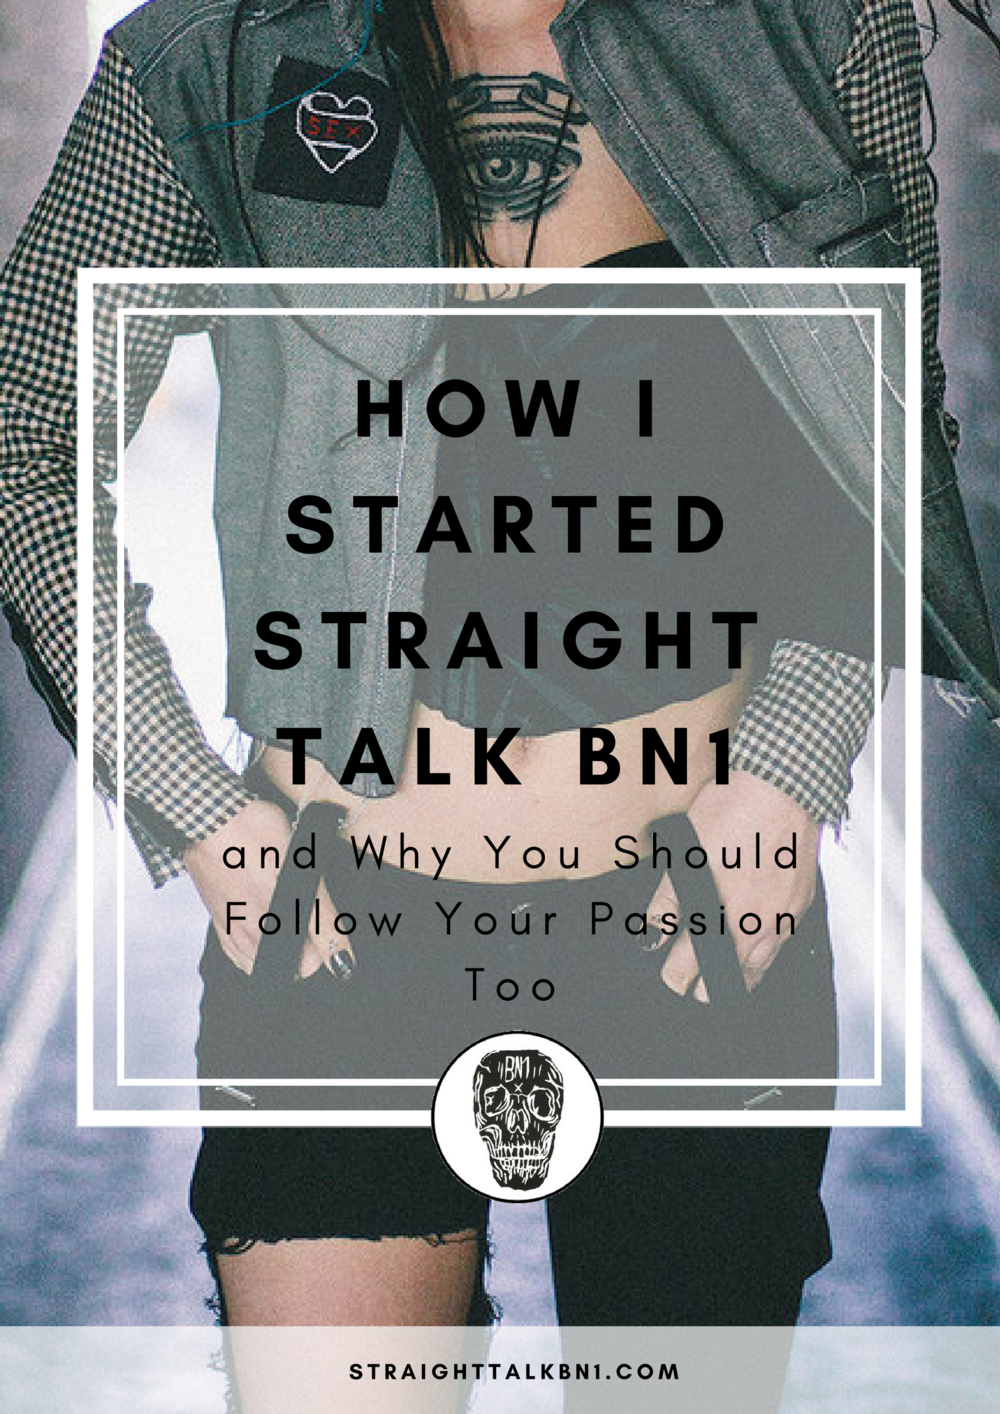 straight-talk-bn1-how-i-started-my-business.jpg